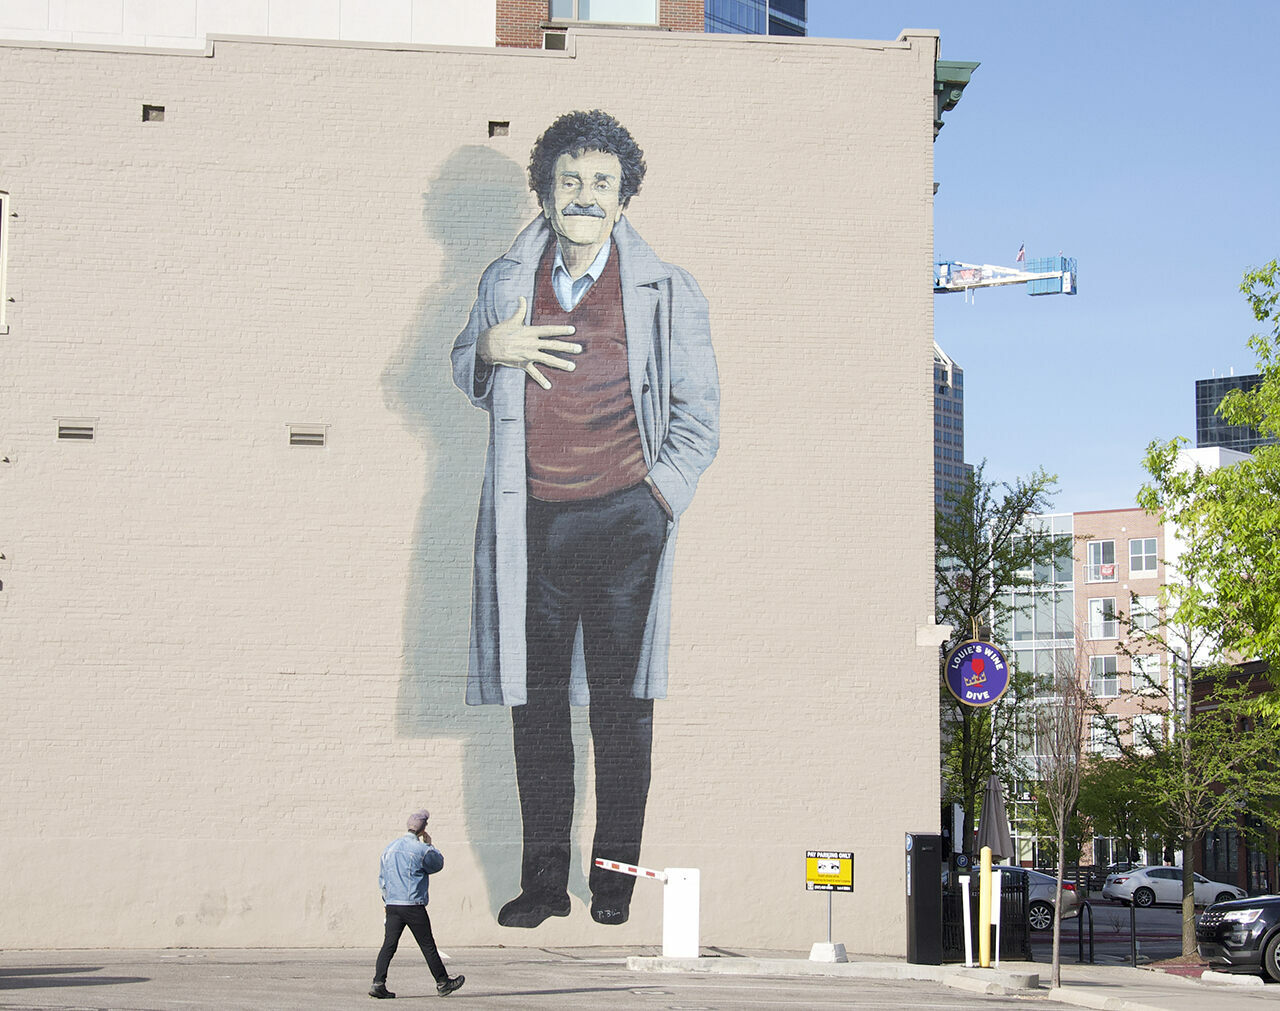 The Kurt Vonnegut mural in downtown Indianapolis.